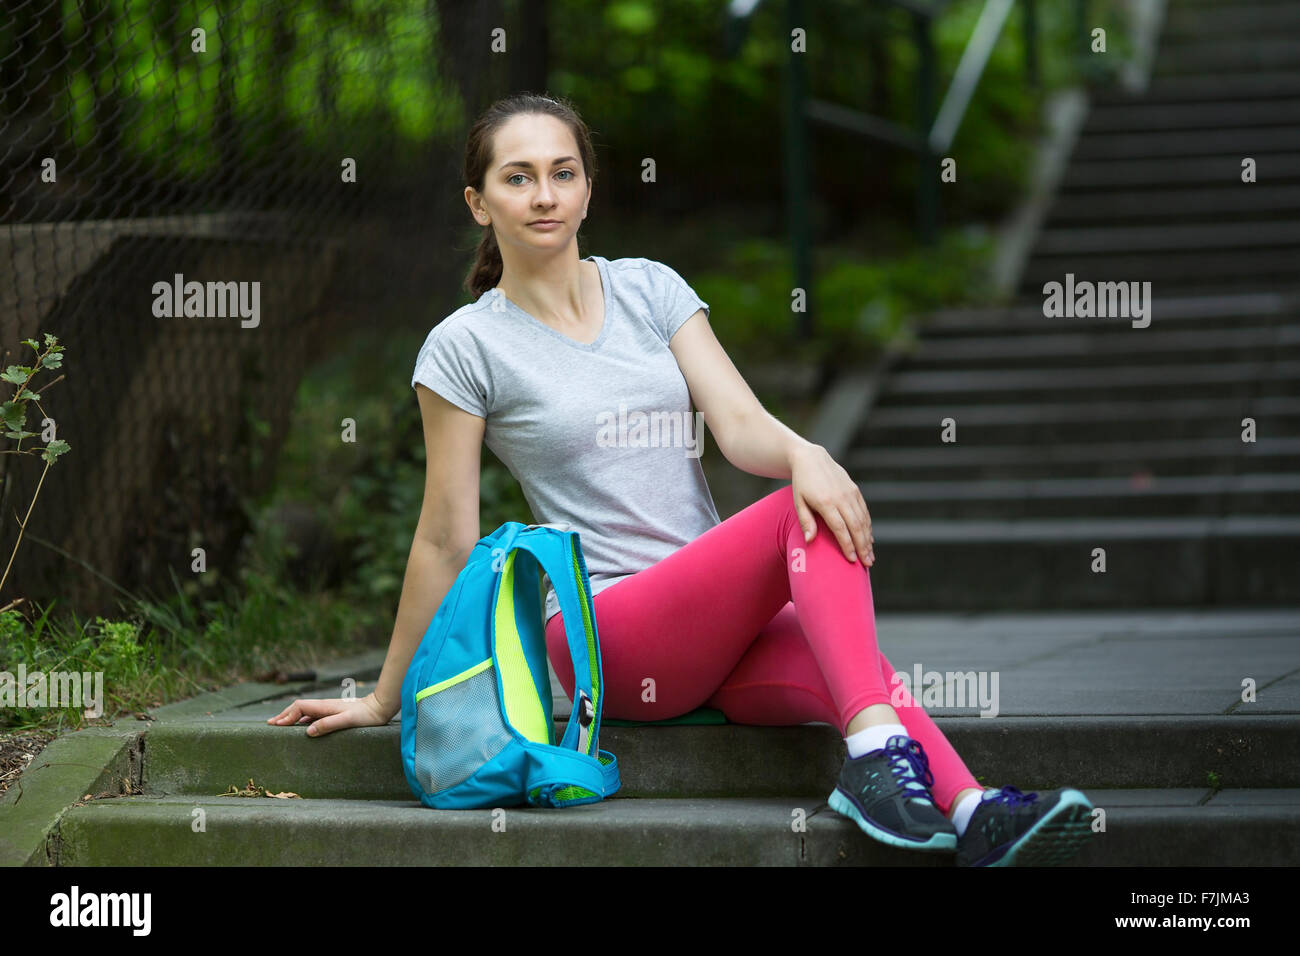 Young sporty girl sitting on the steps outdoors. - Stock Image